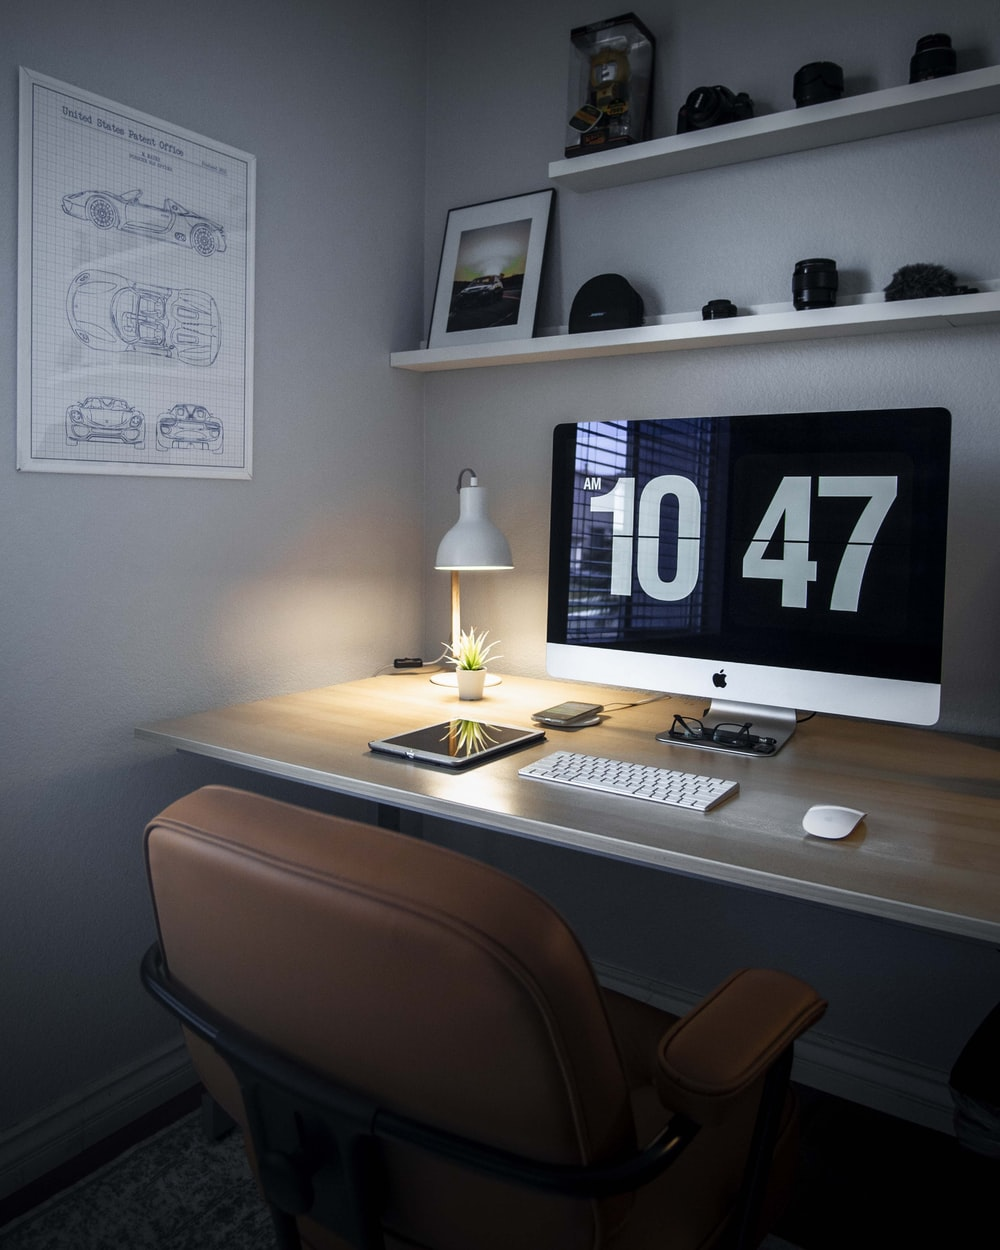 silver iMac displaying 10 47